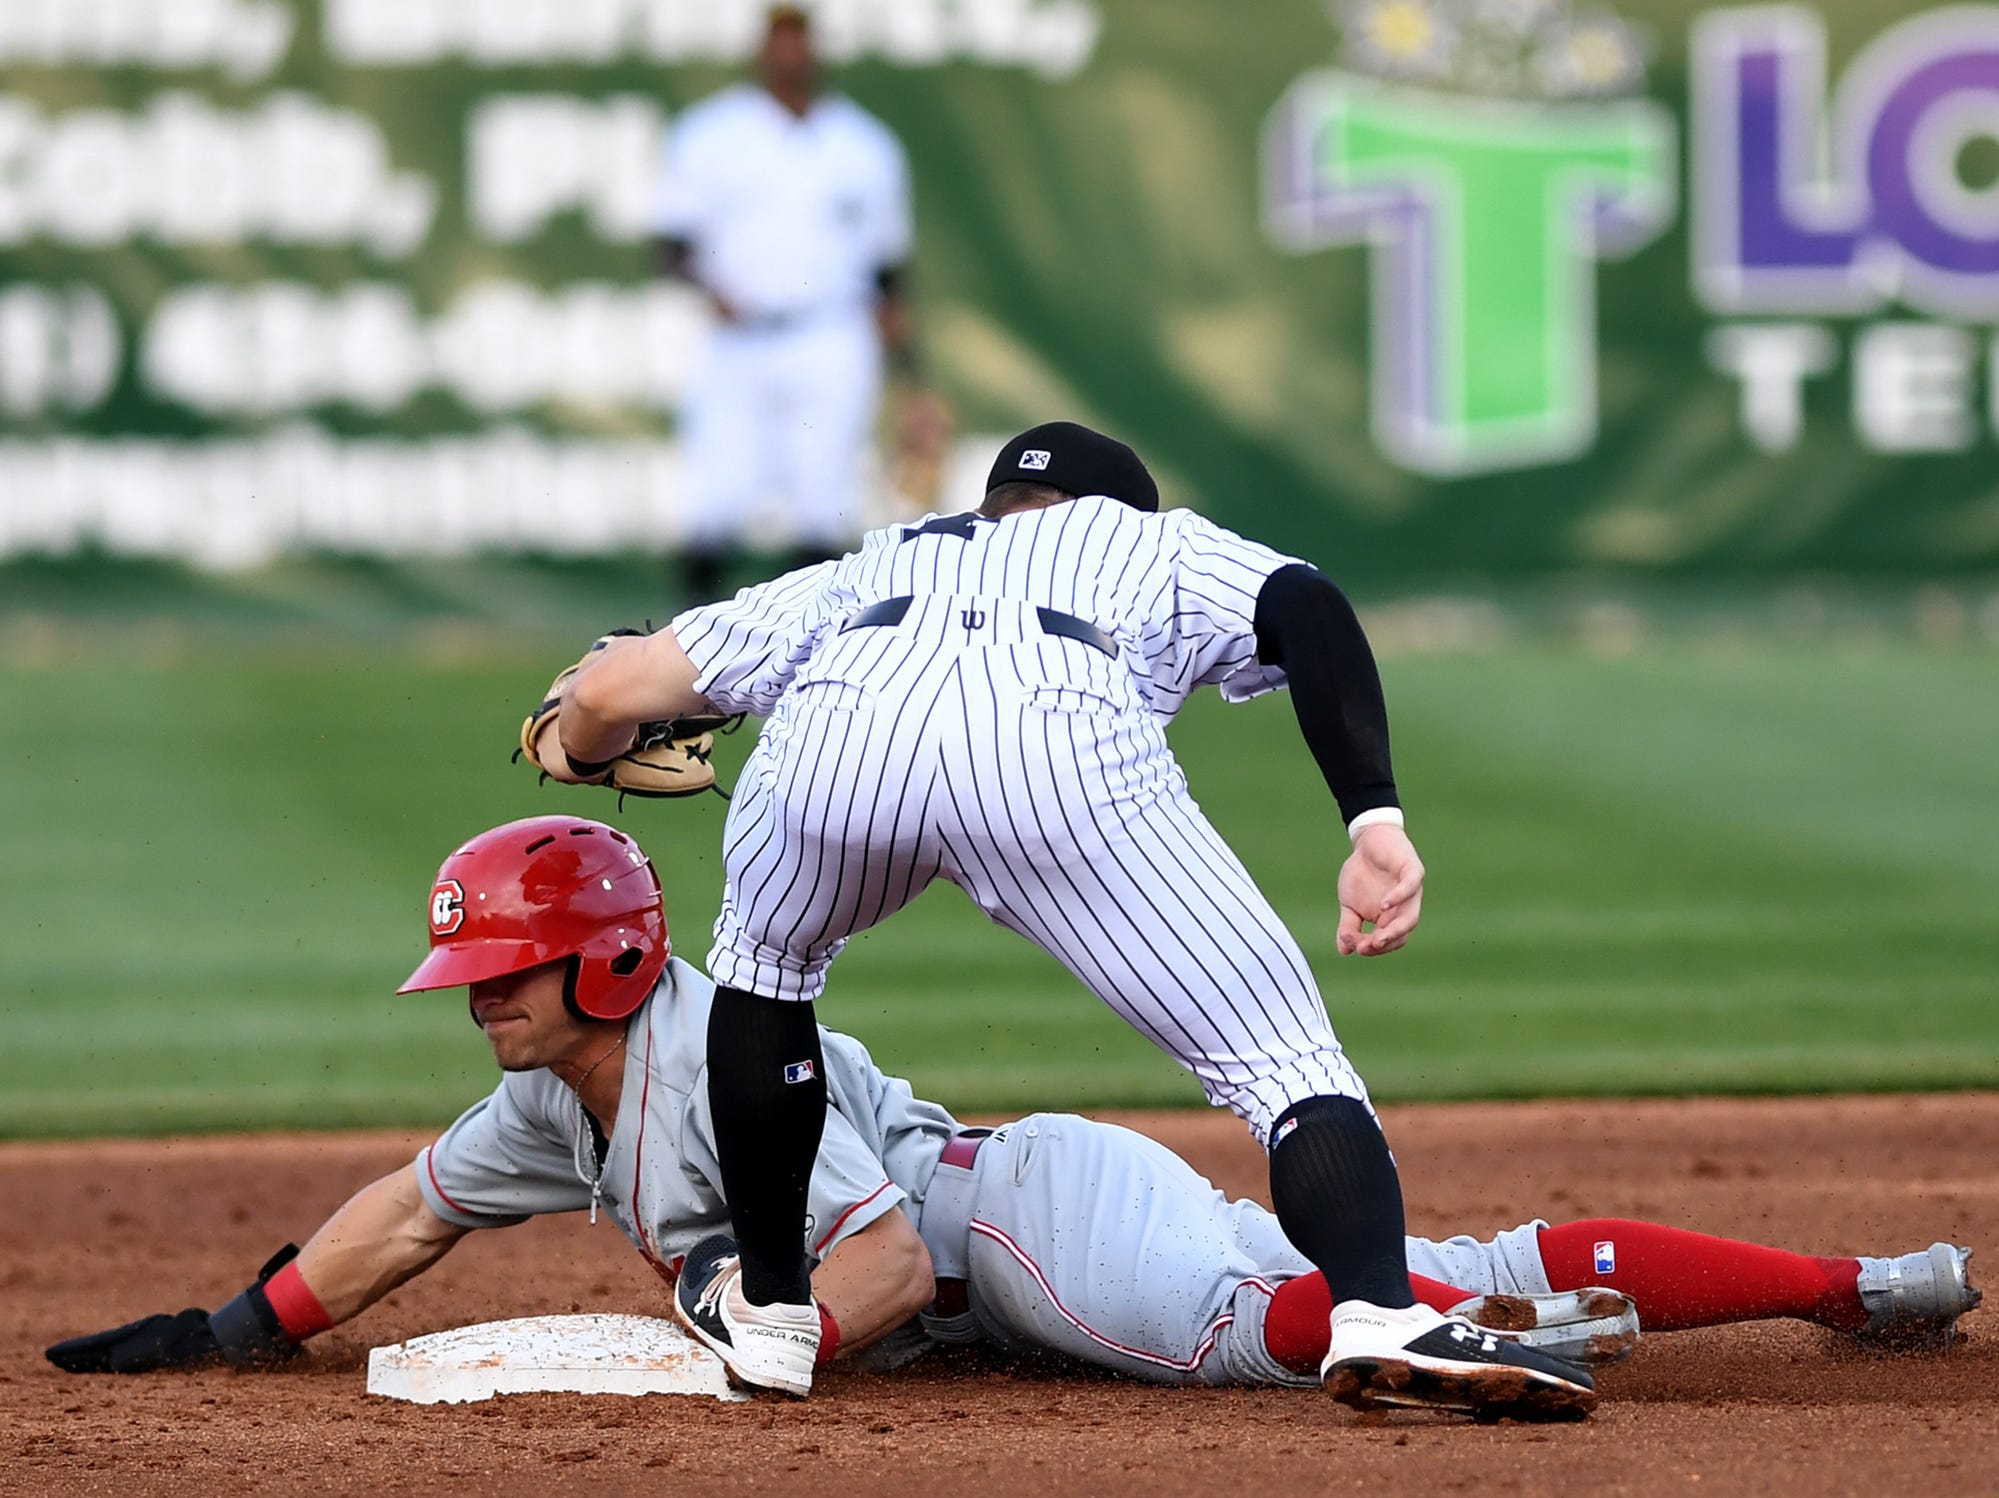 Generals' Andy Young tags Chattanooga Lookouts' TJ Field during their game, Thursday, April 11.